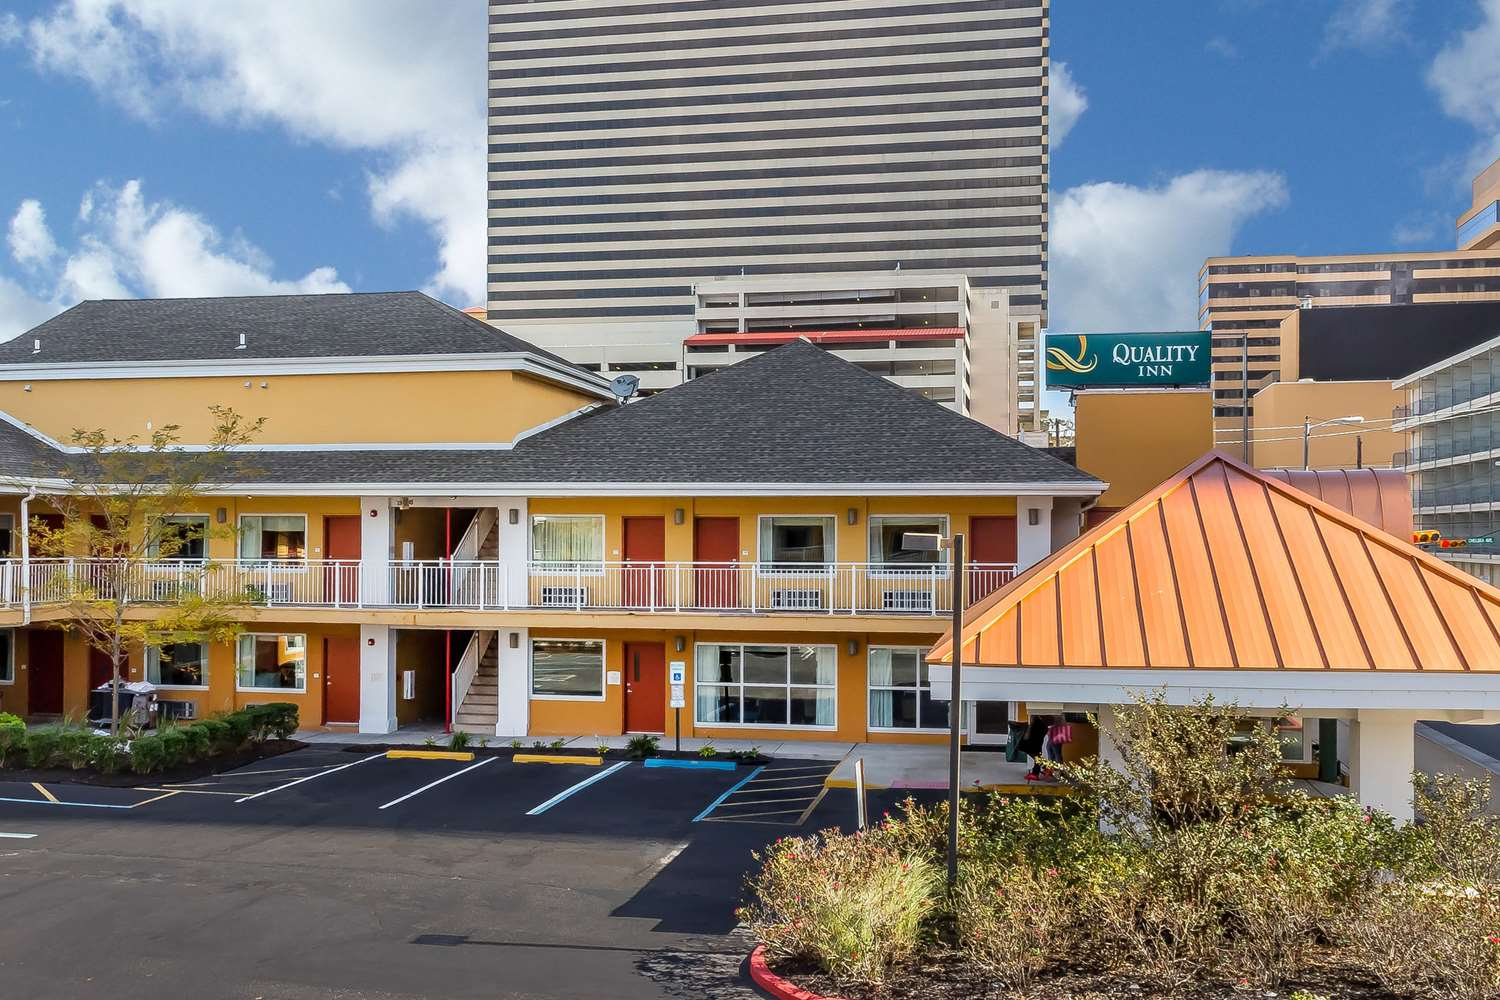 Exterior view - Quality Inn Flamingo Atlantic City